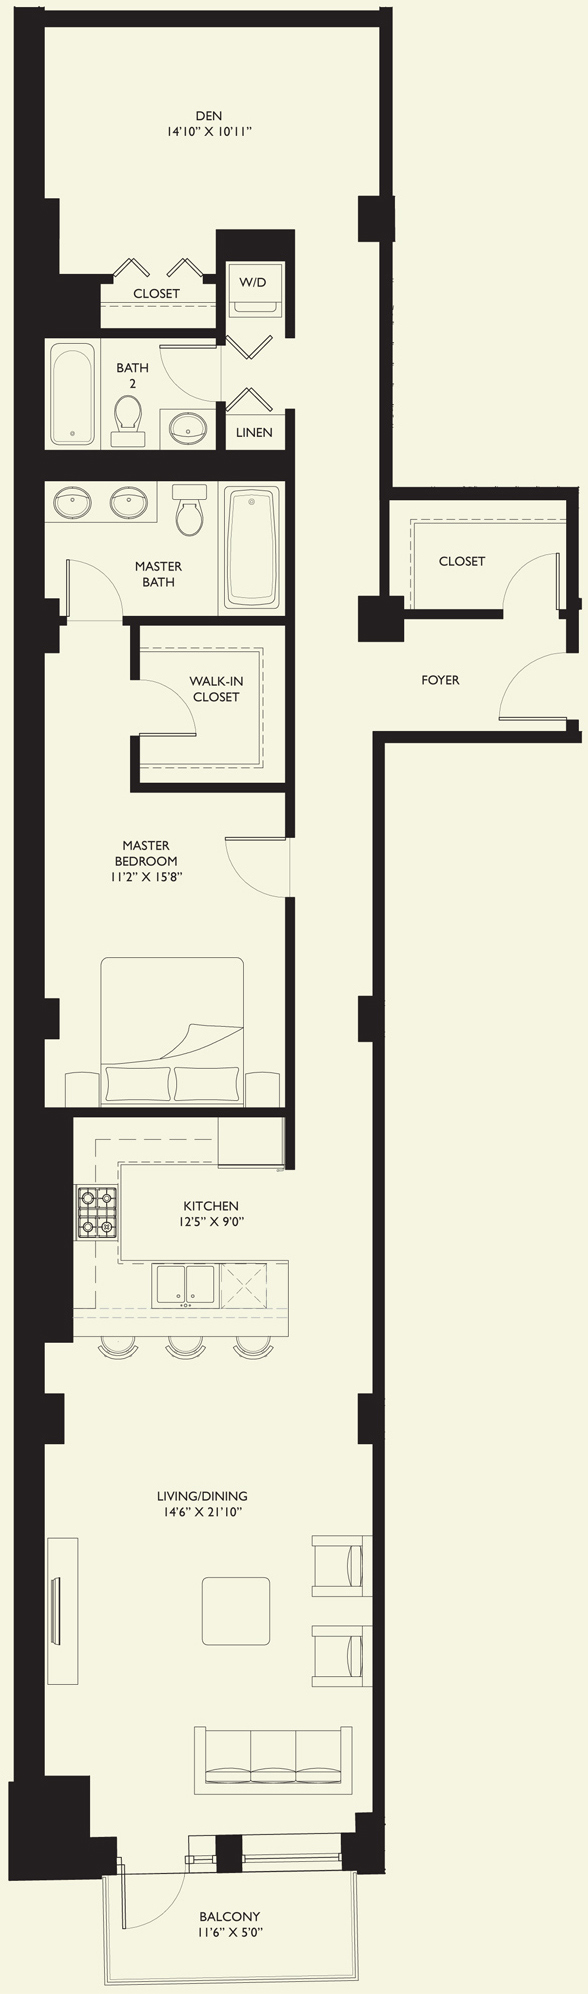 One-bedroom at Six North Michigan, 6 N Michigan Ave, Chicago